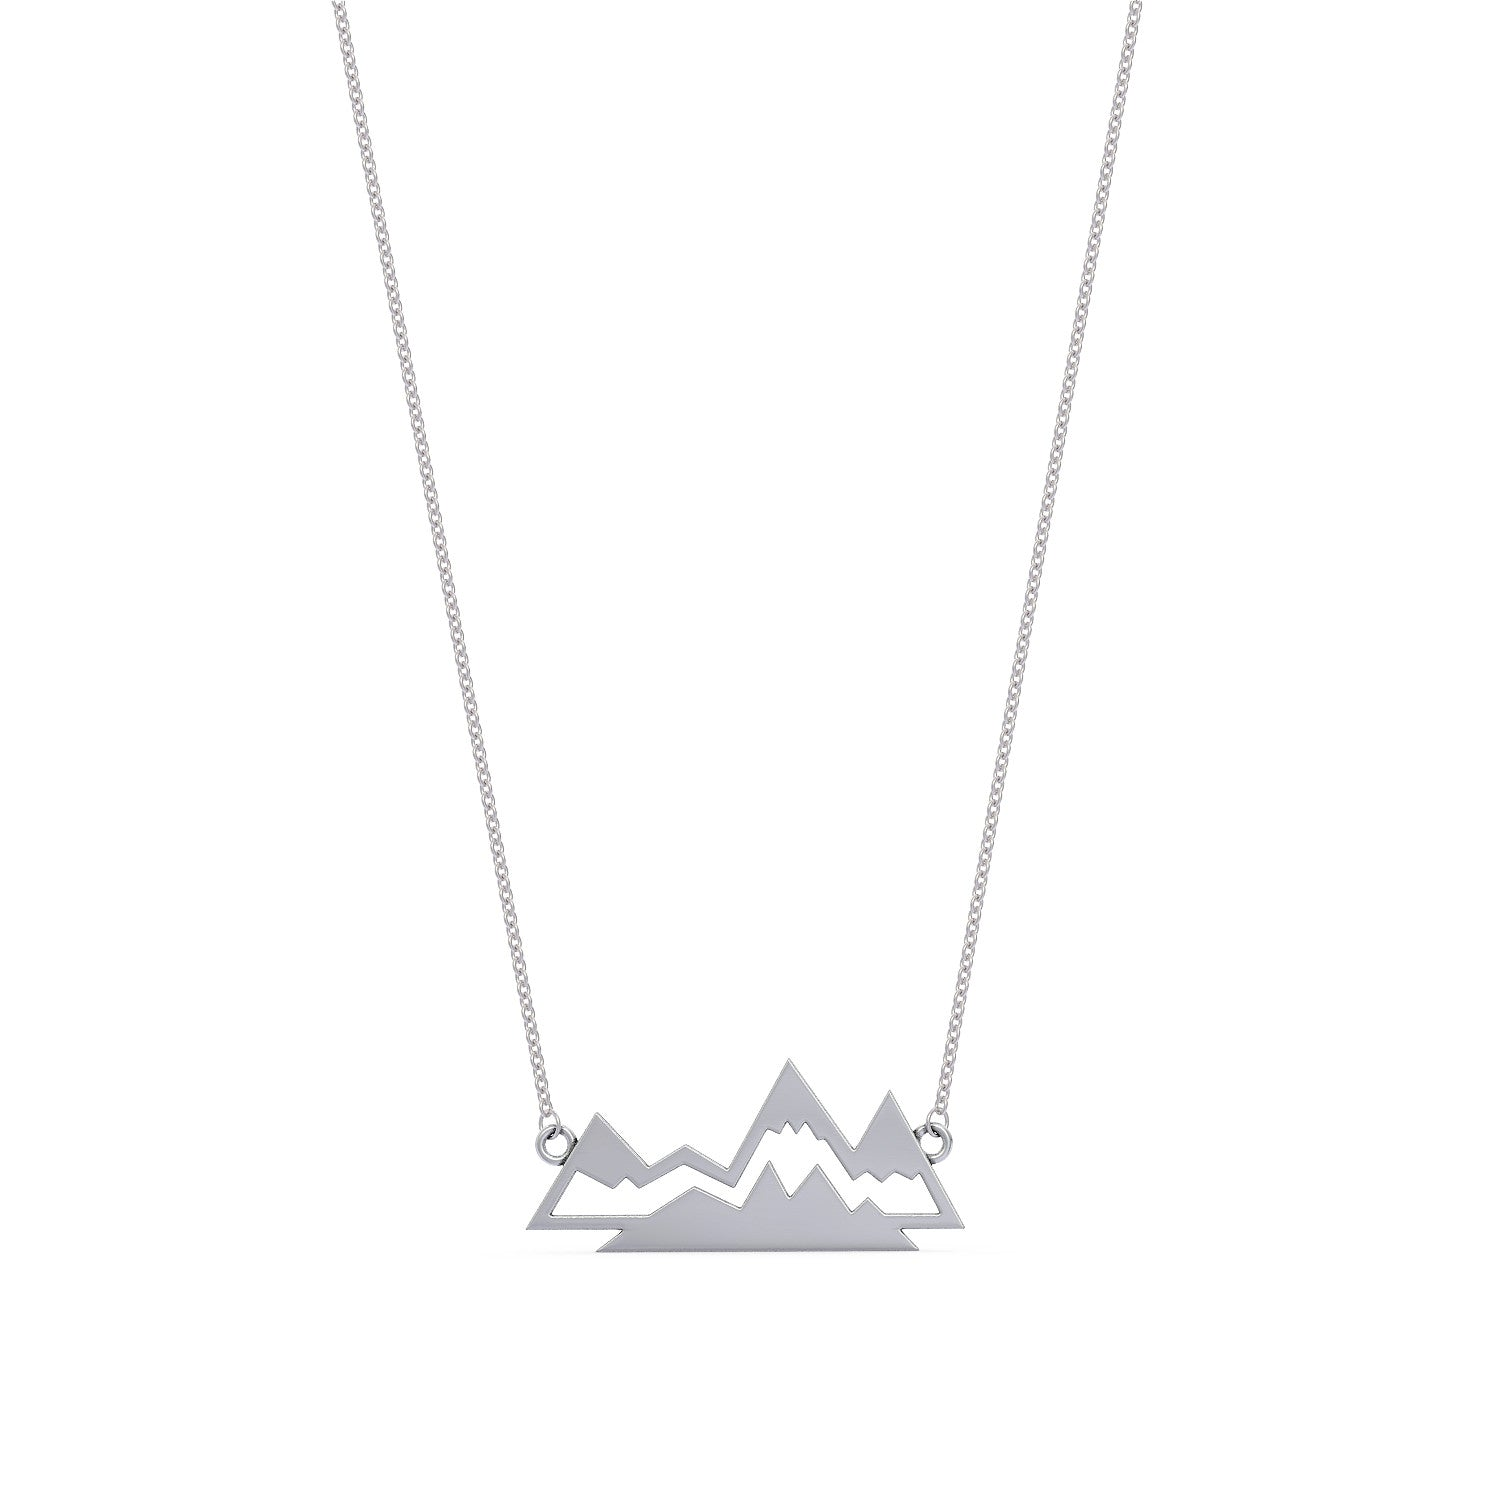 Mountaineer Necklace